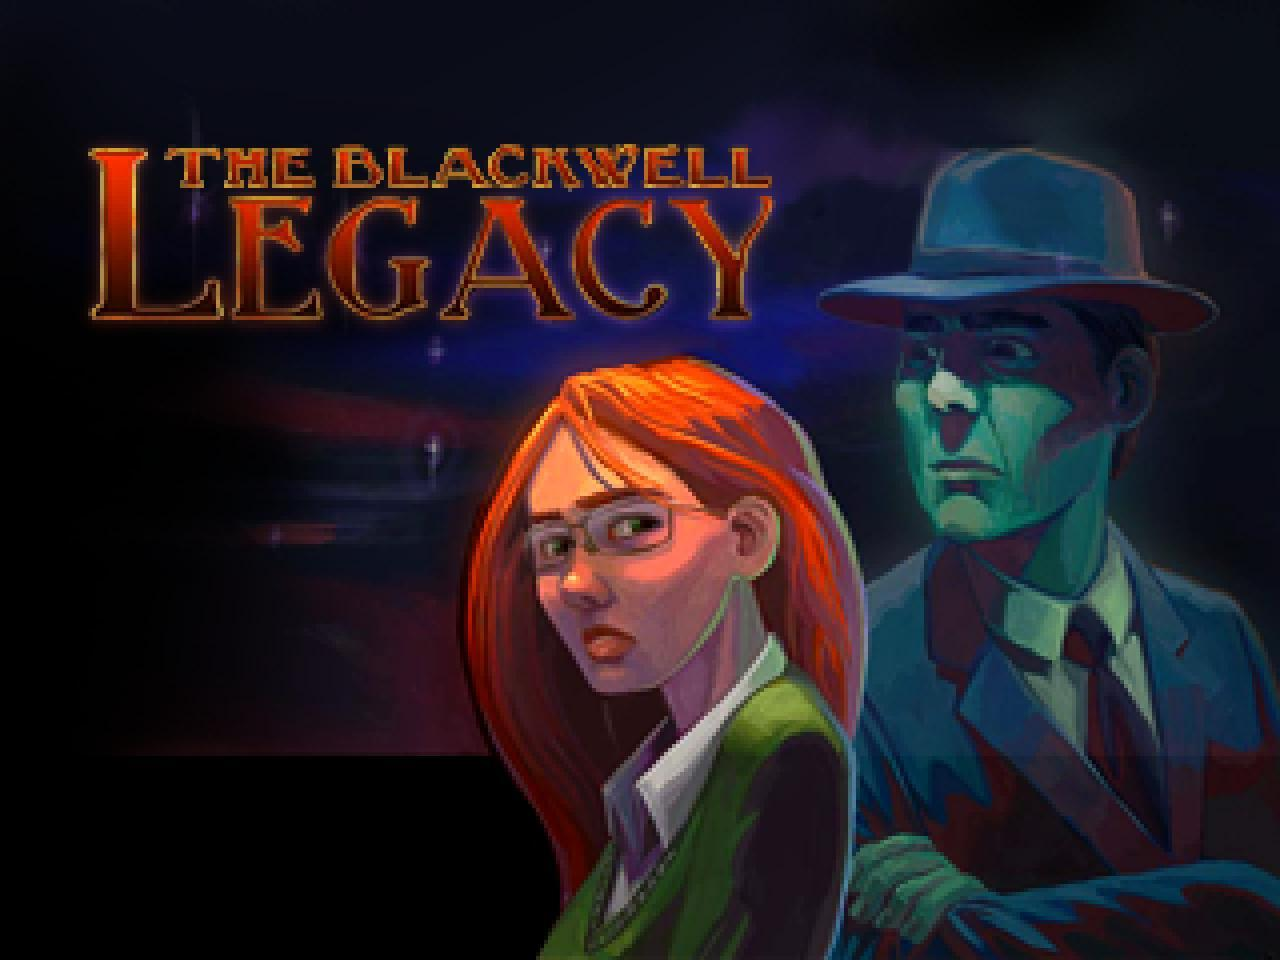 Wadjet Eye's Point-And-Click Blackwell Adventure Games Are Coming To iOS Next Month